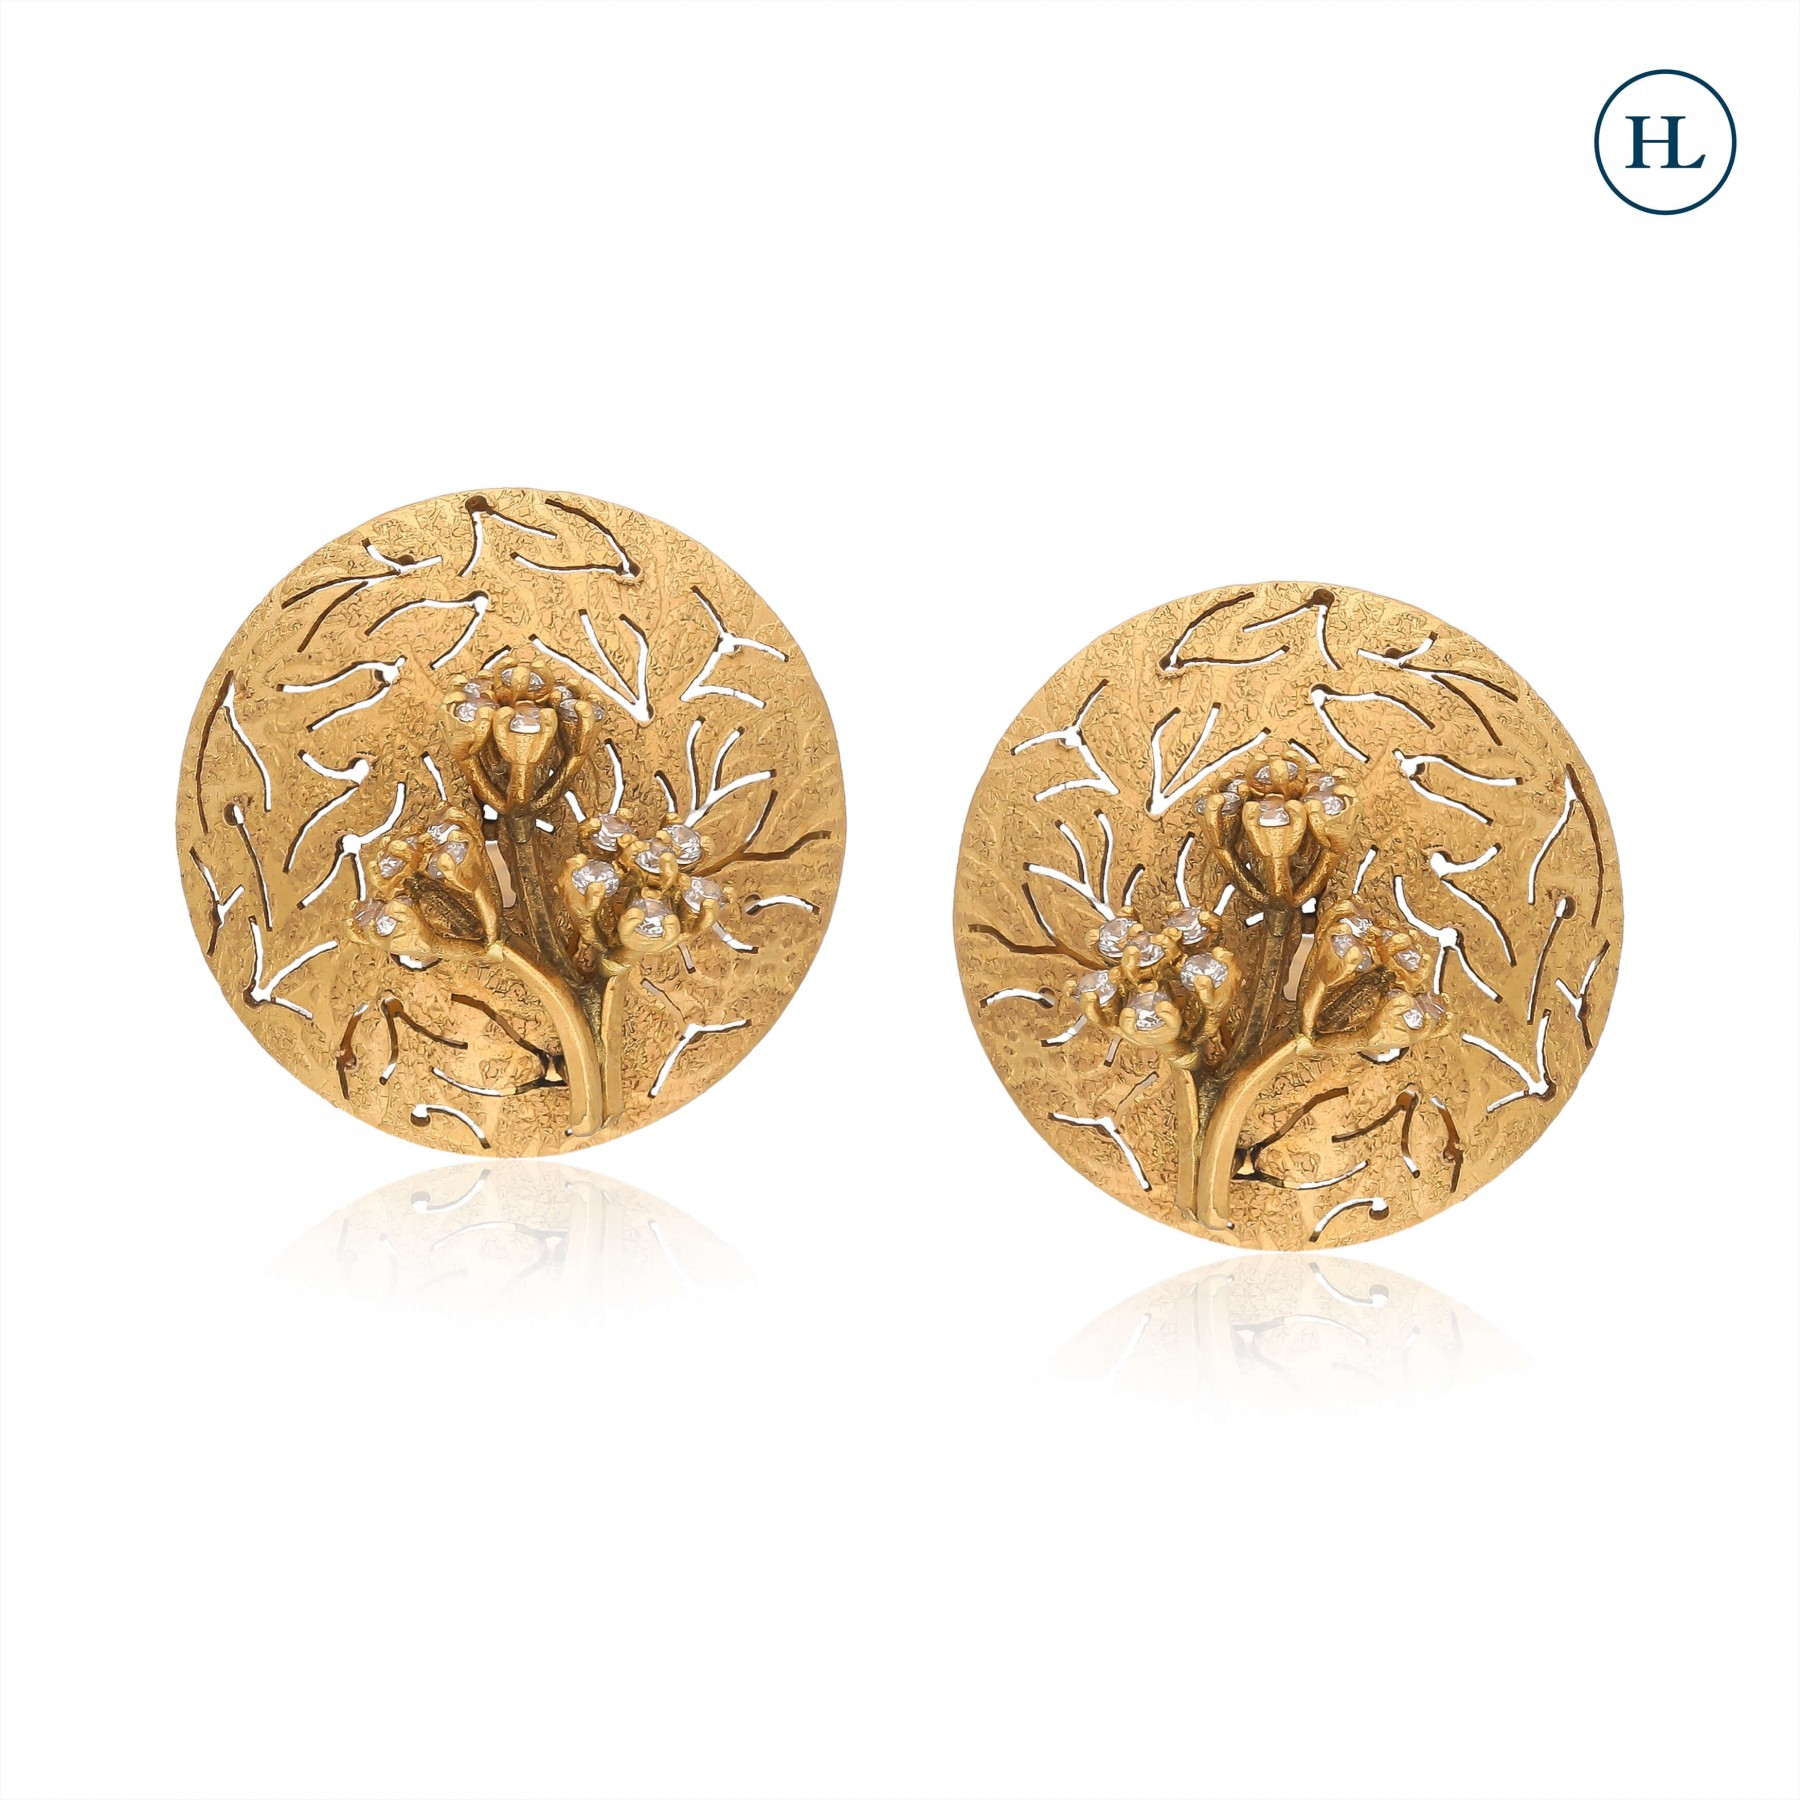 Antique-Styled Flower Gold Tops